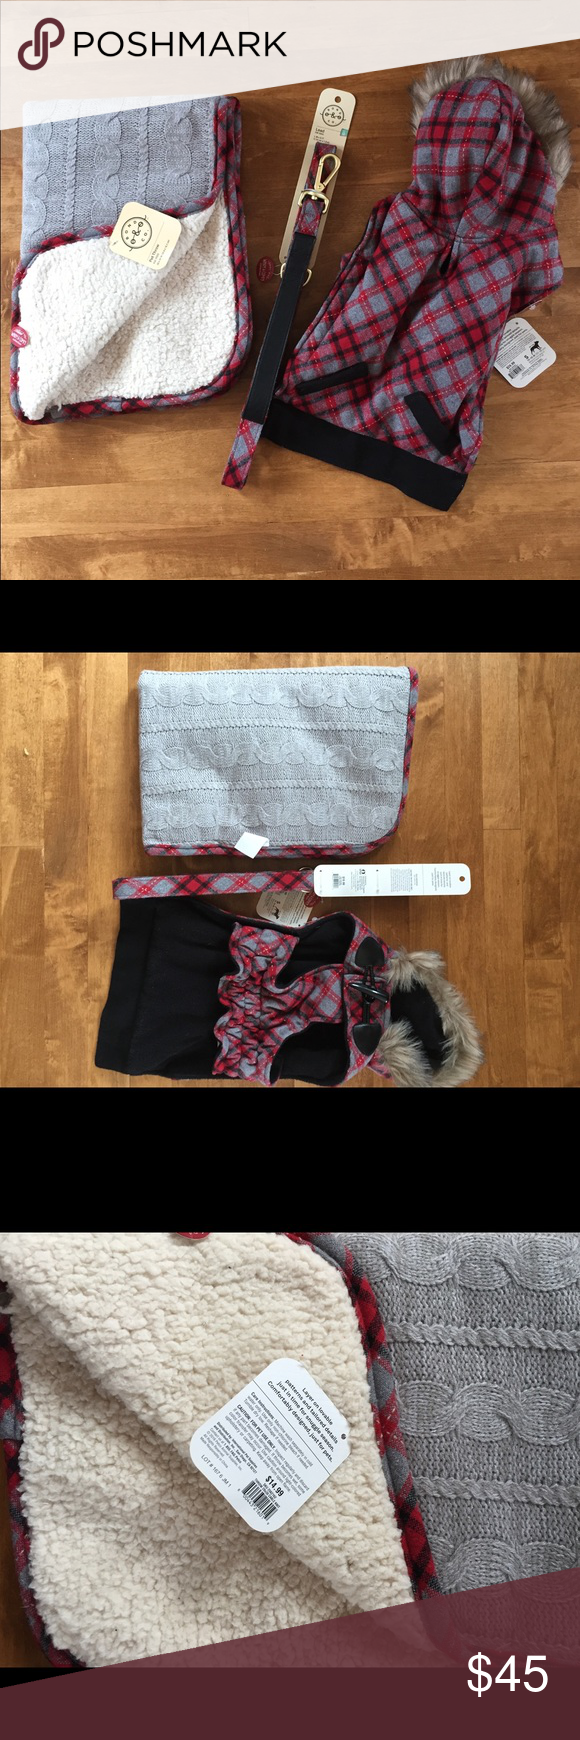 "🐶NWT 3pc Set for DOGS! coat, blanket & leash🐶 🐶New w/ tags 3pc Dog set. Set includes beautiful plaid red black and gray hooded fur coat. Cozy matching fleece throw ( 20x30"") and matching leash 1""x6ft 🐶 bond & co Other"